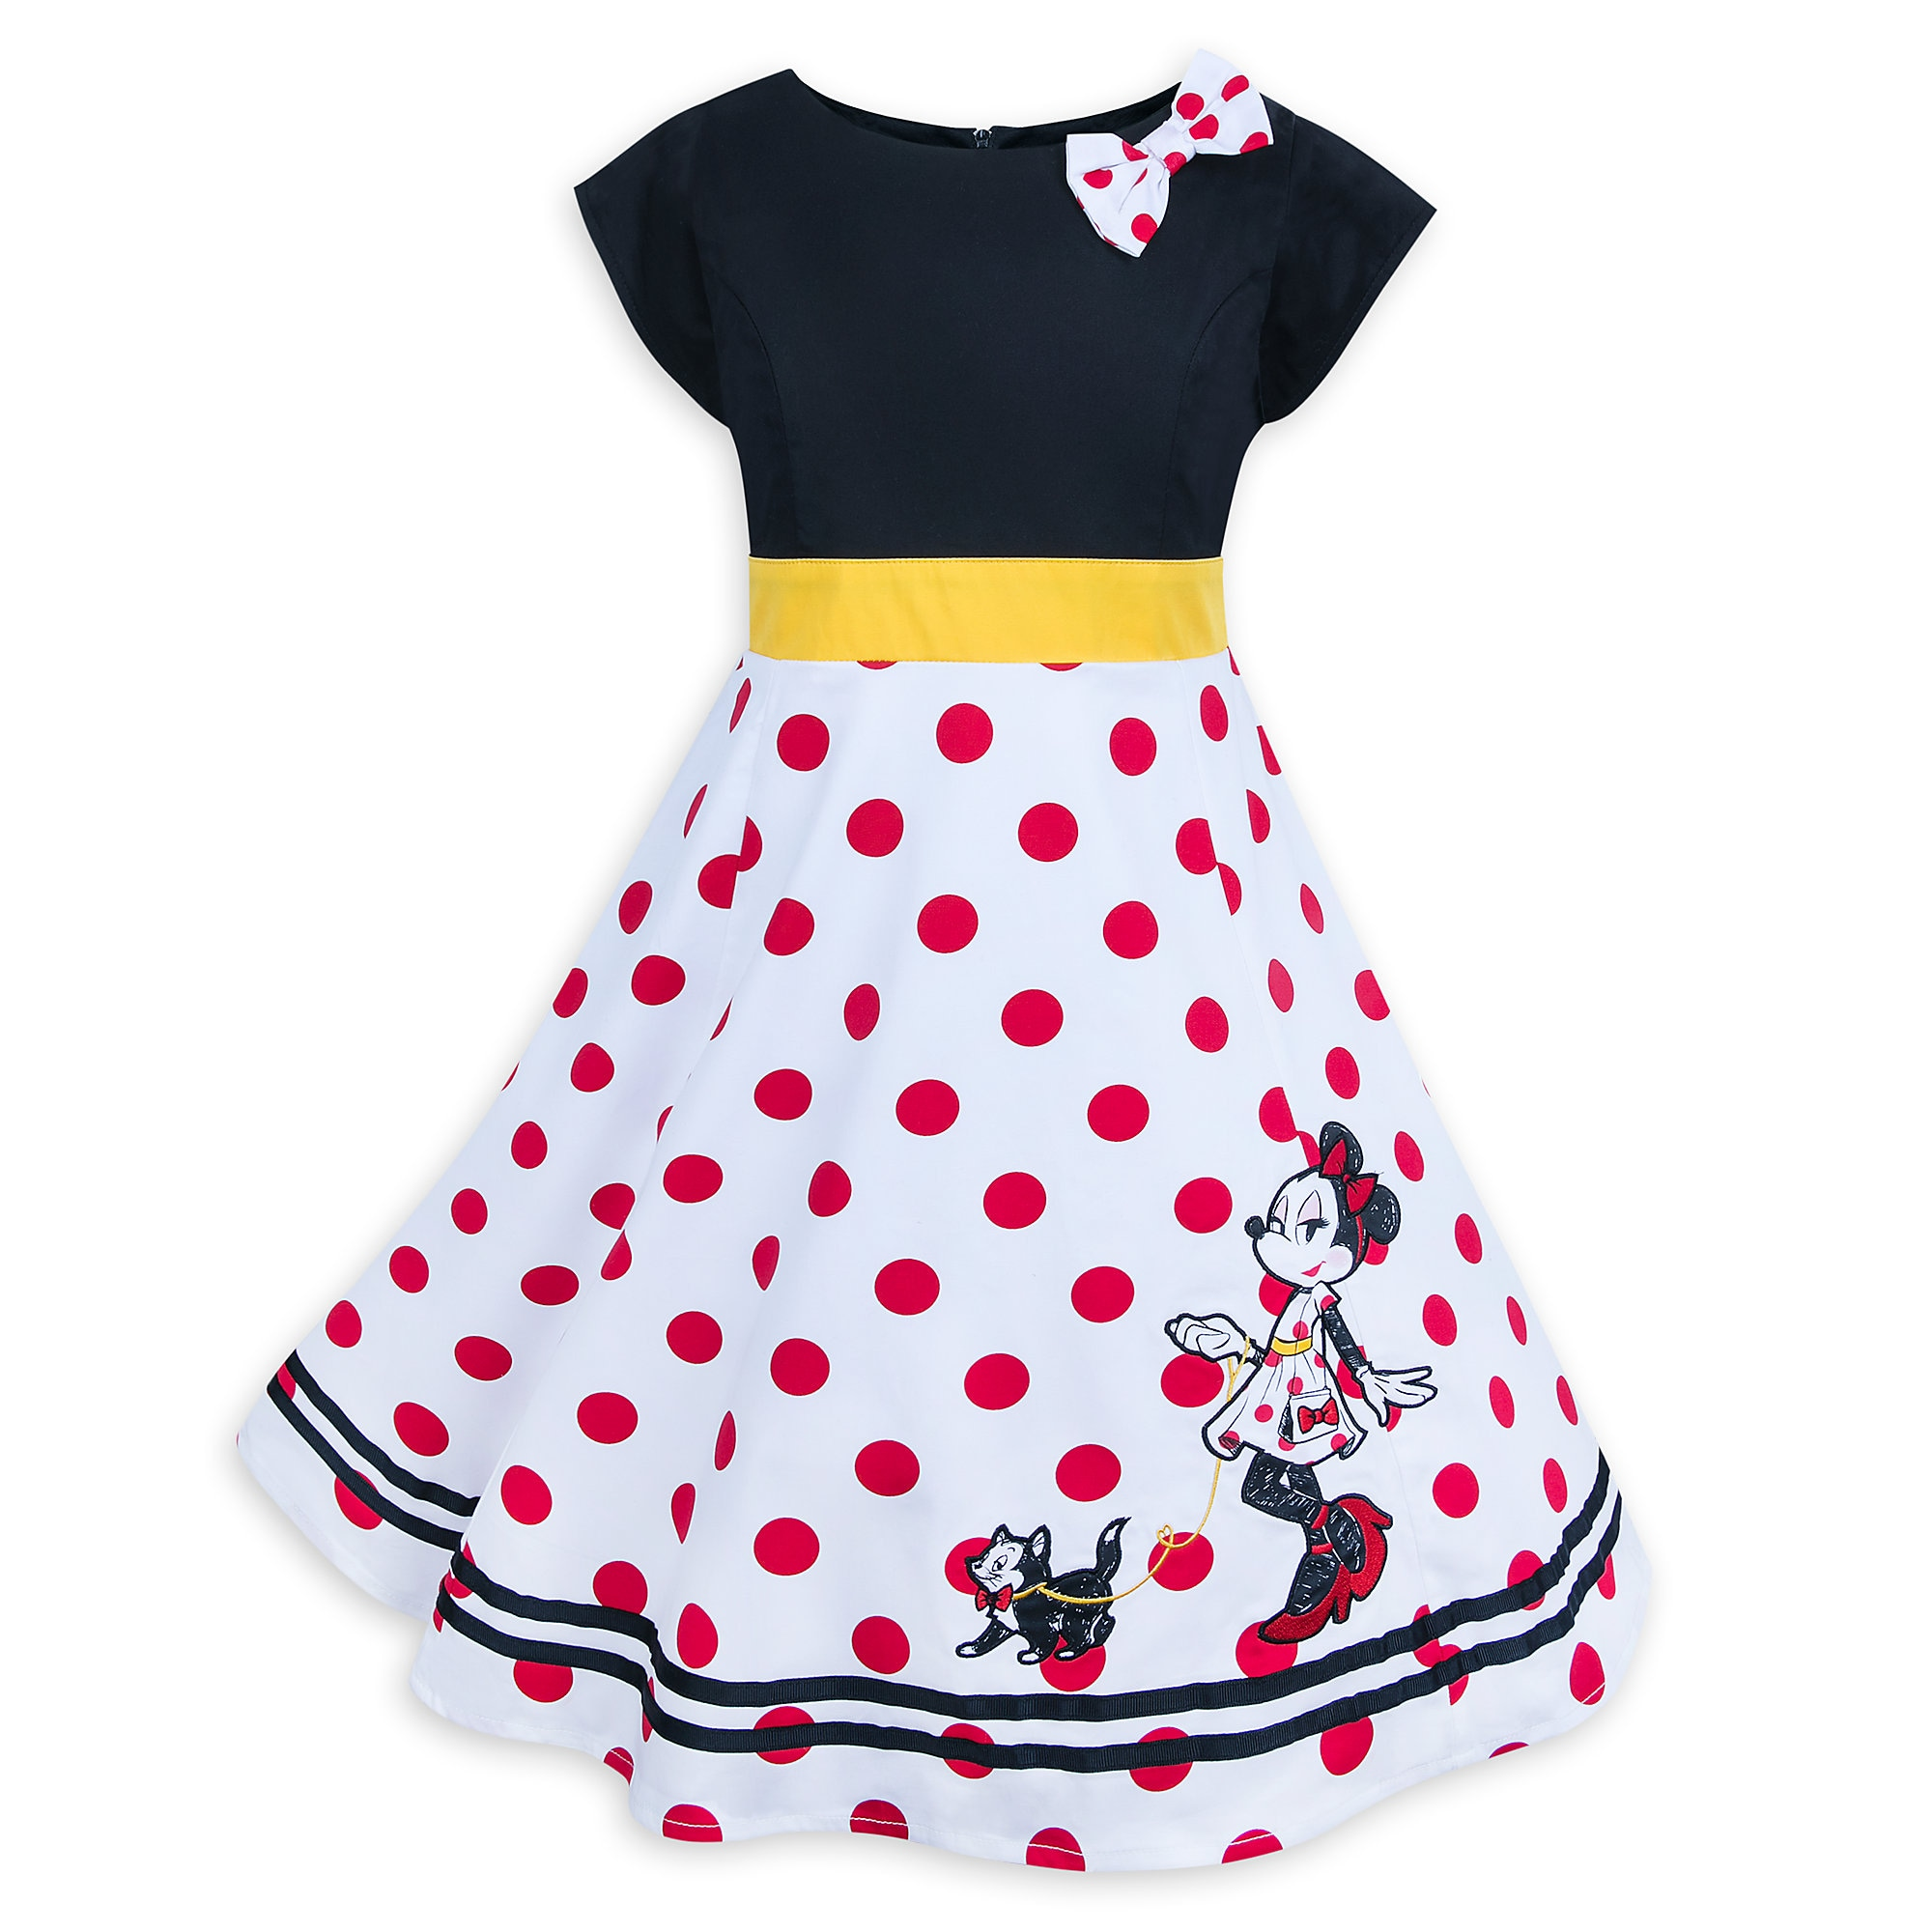 1d95977a4 Minnie Mouse and Figaro Dress for Girls now available for purchase